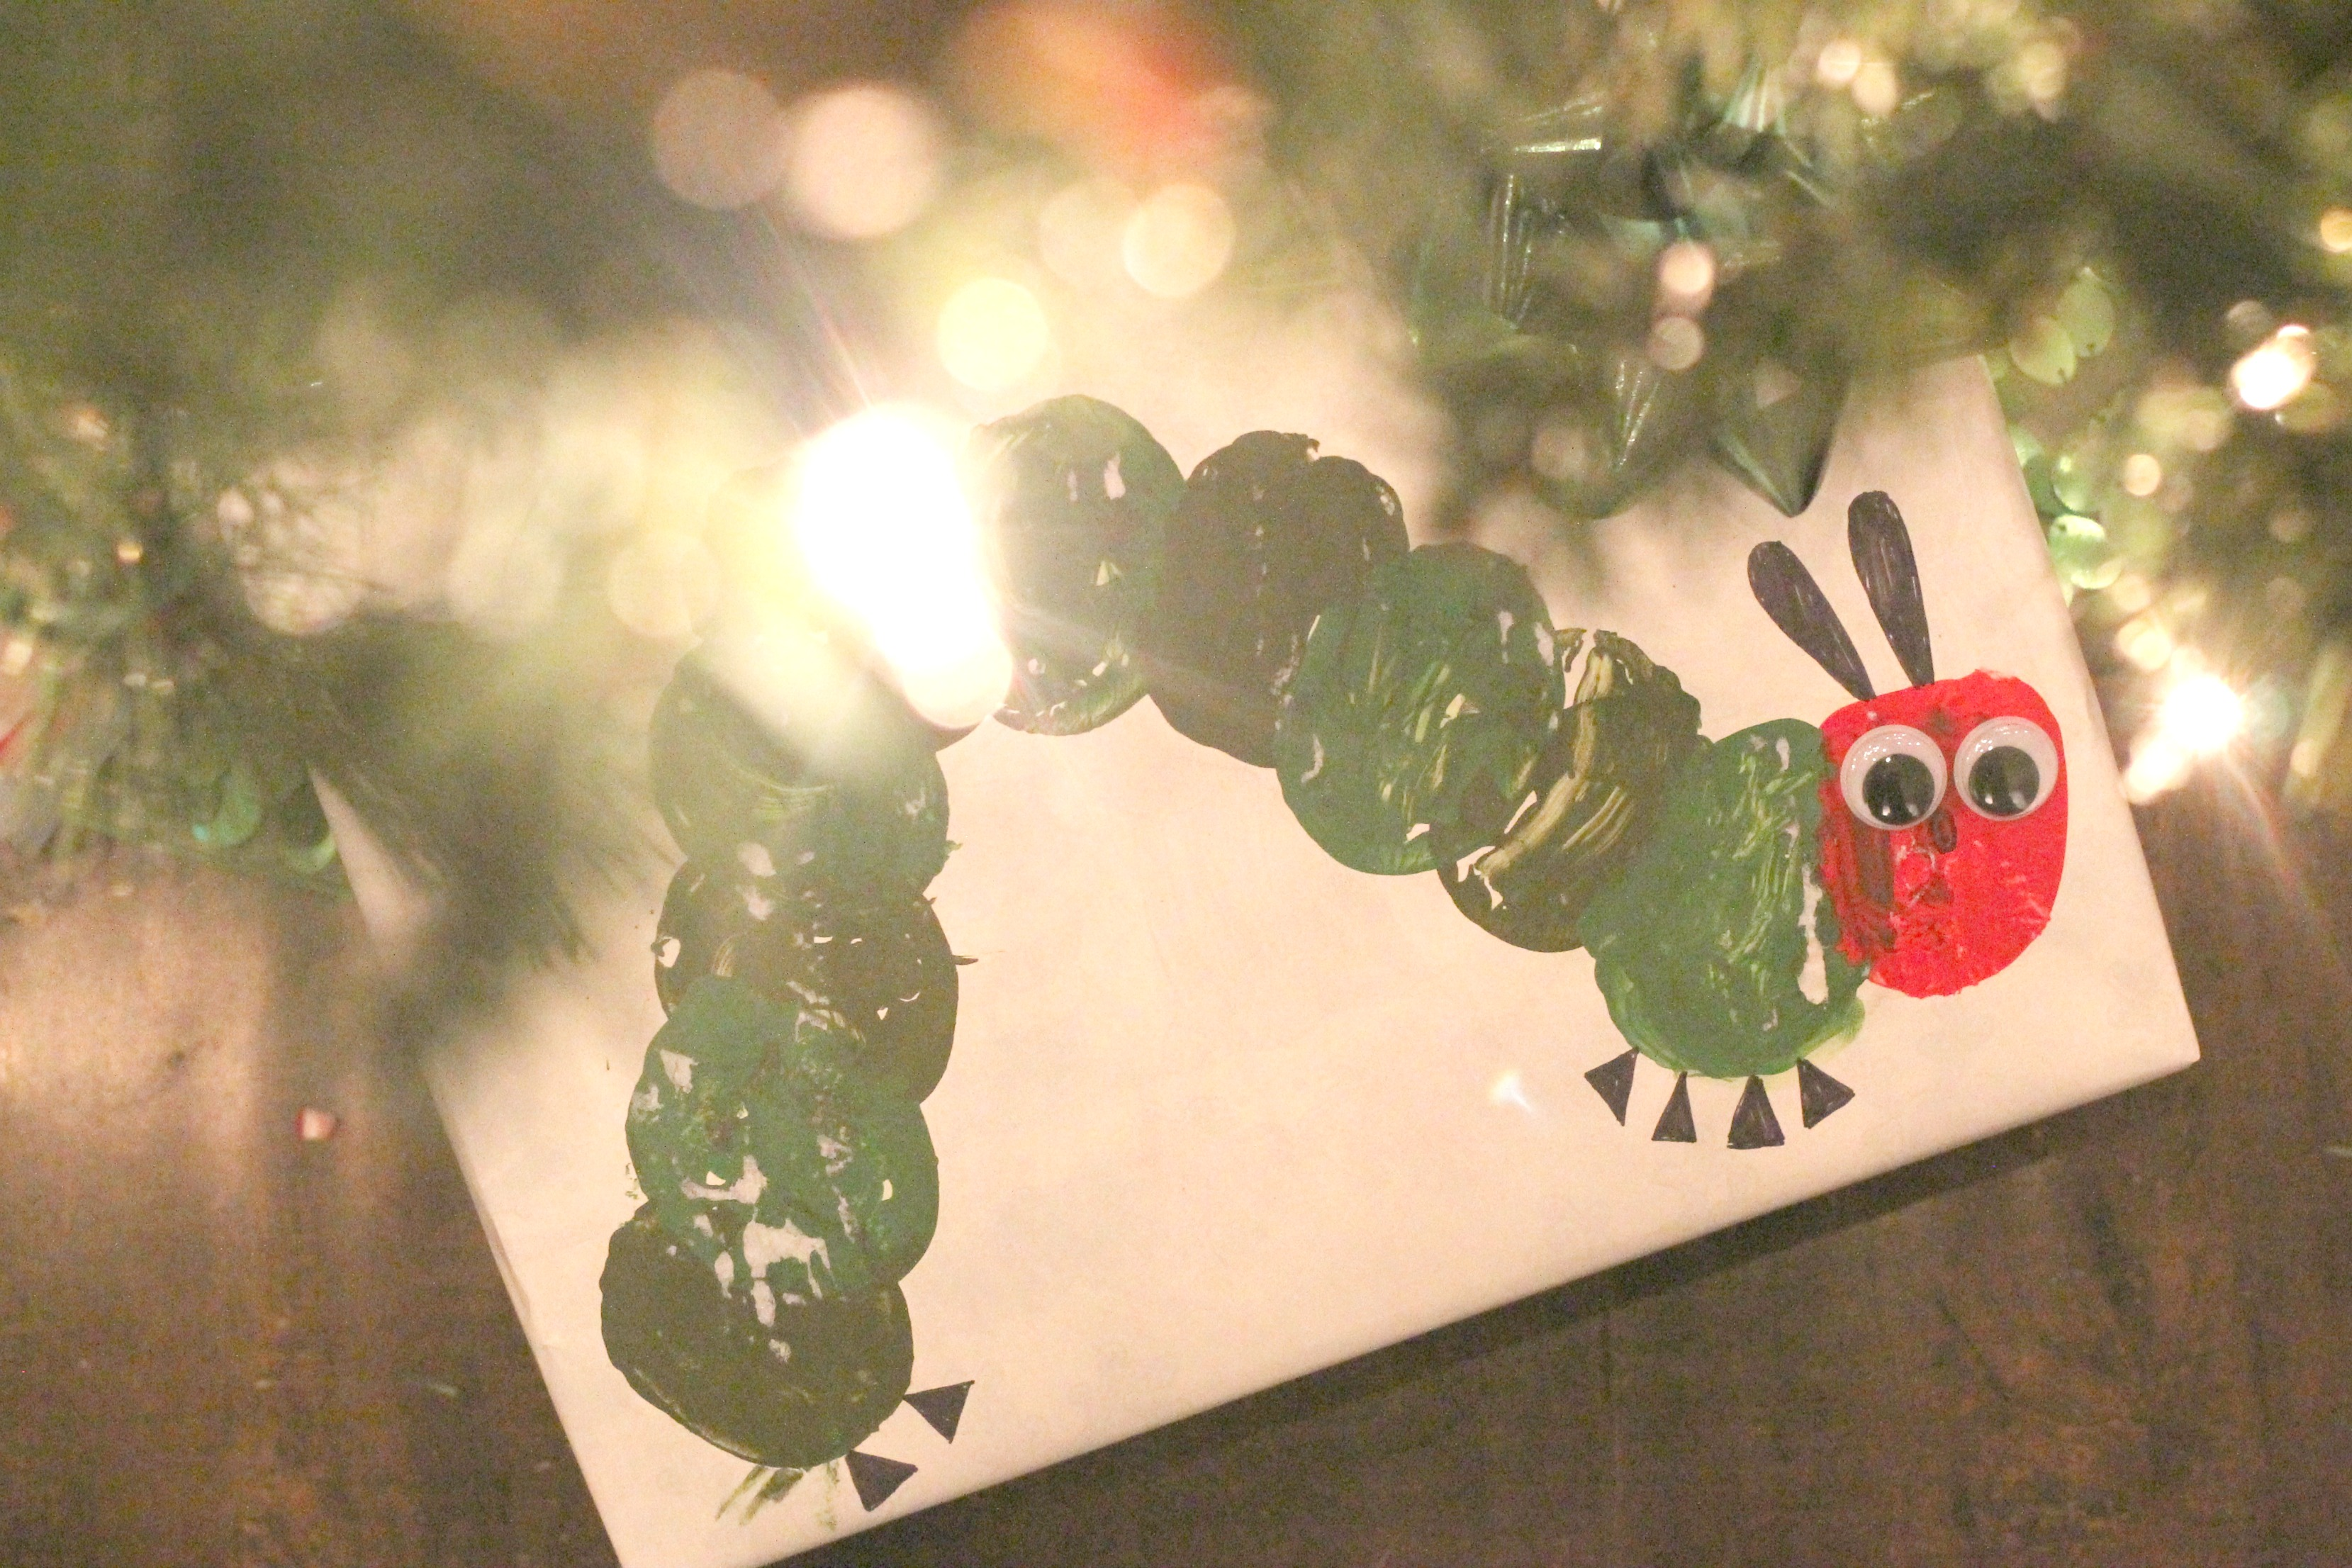 Does your child love the fun illustrations by Eric Carle? Look at all these gift ideas from the world of Eric Carle.